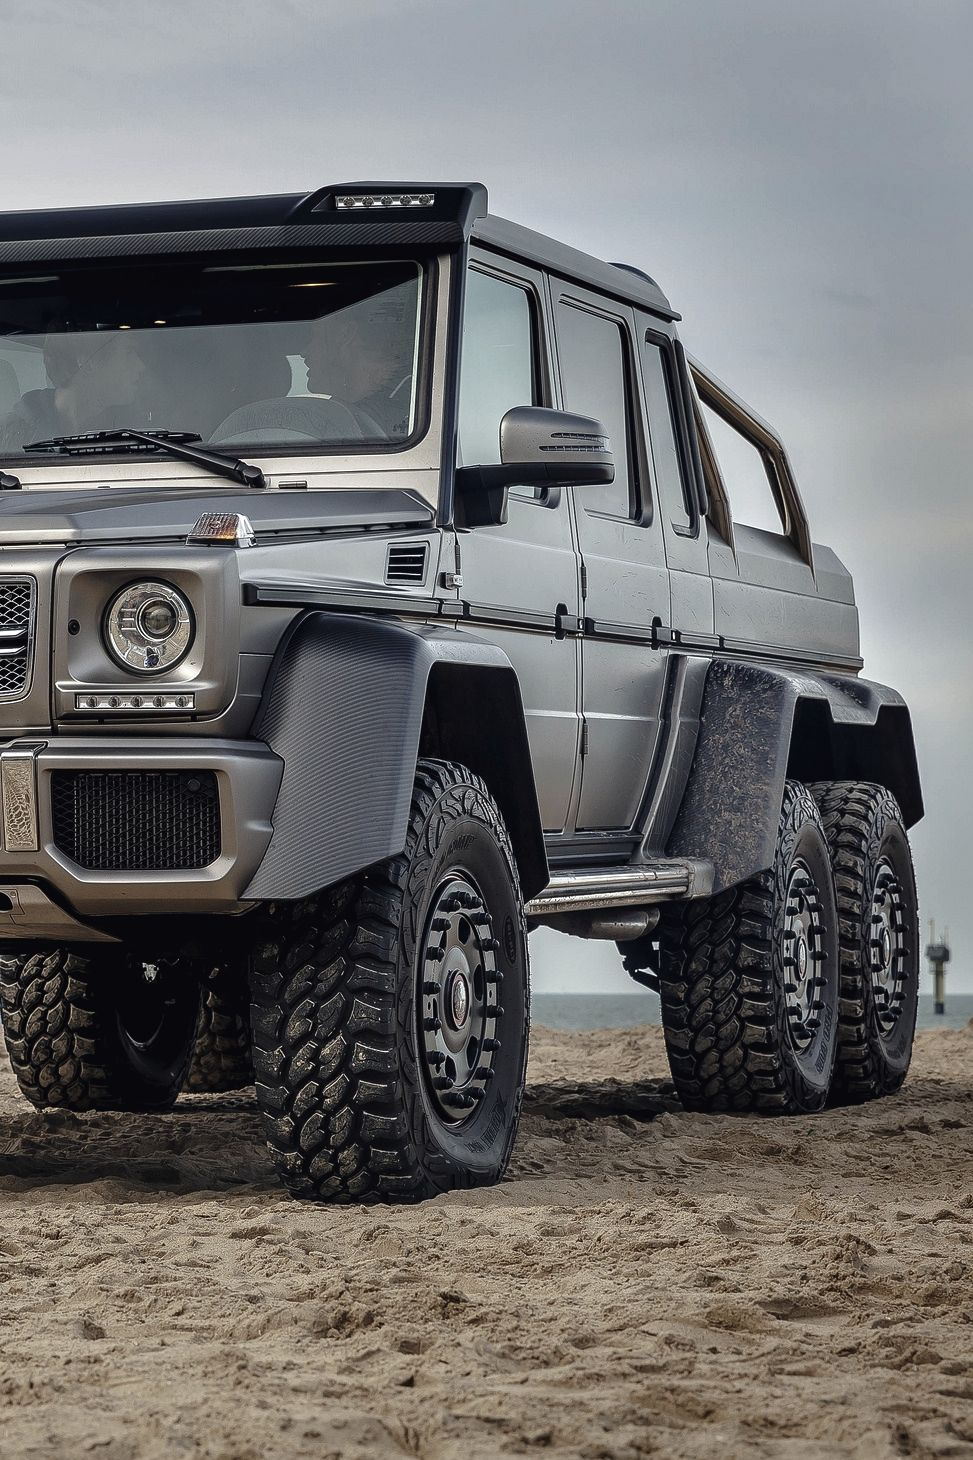 Vistale mercedes g63 6x6 via g klass pinterest for Mercedes benz 4x4 g class